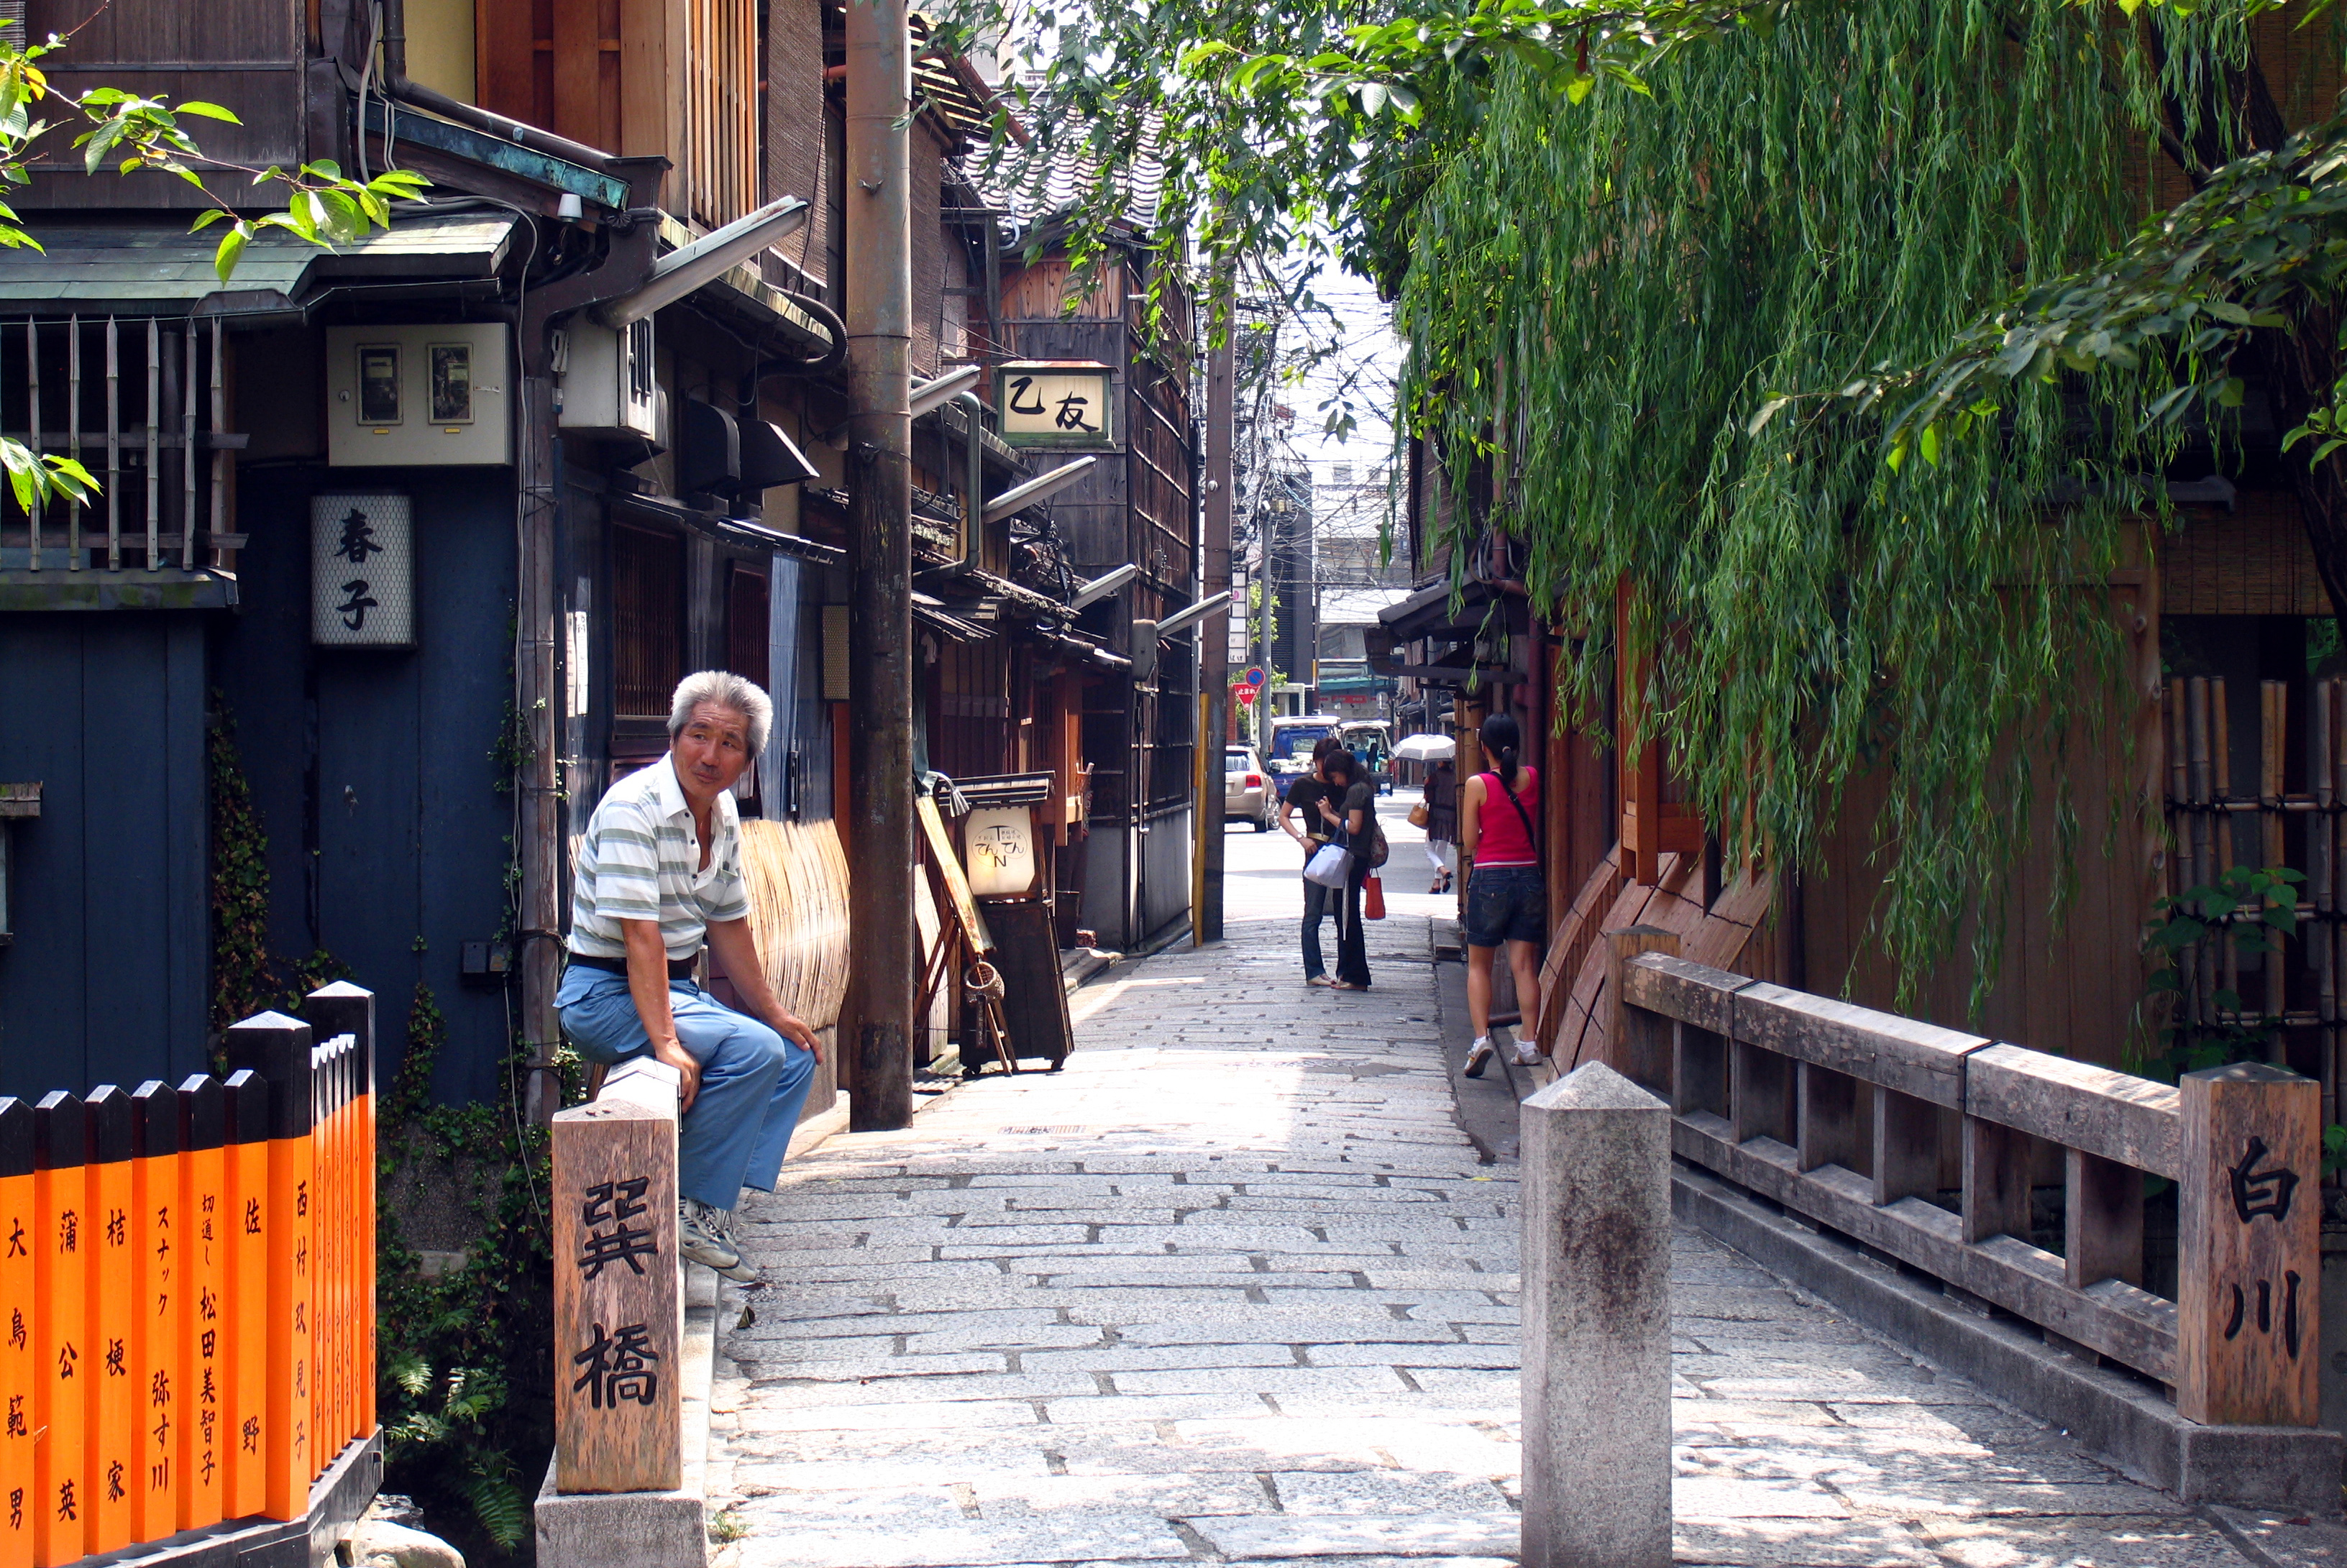 File:Gion.jpg - Wikipedia